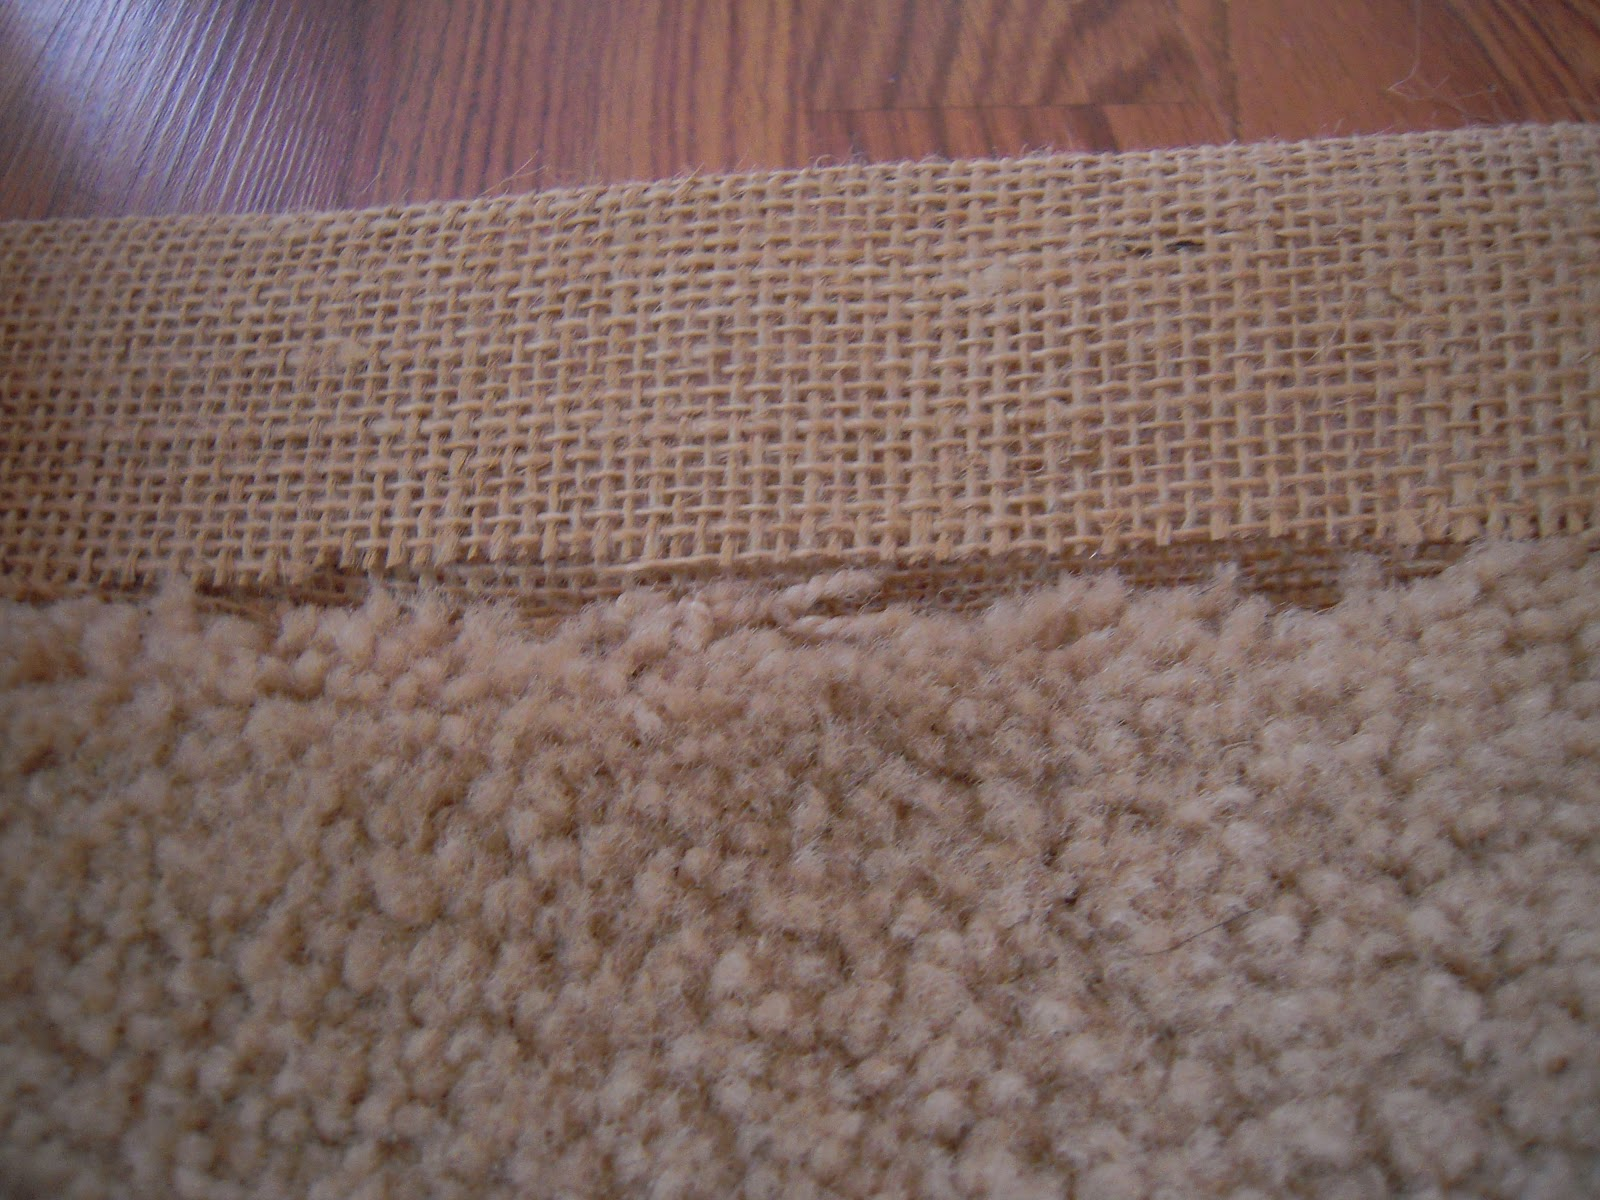 Apply Hot Glue To The Edge Of Carpet And Press Binding Into It